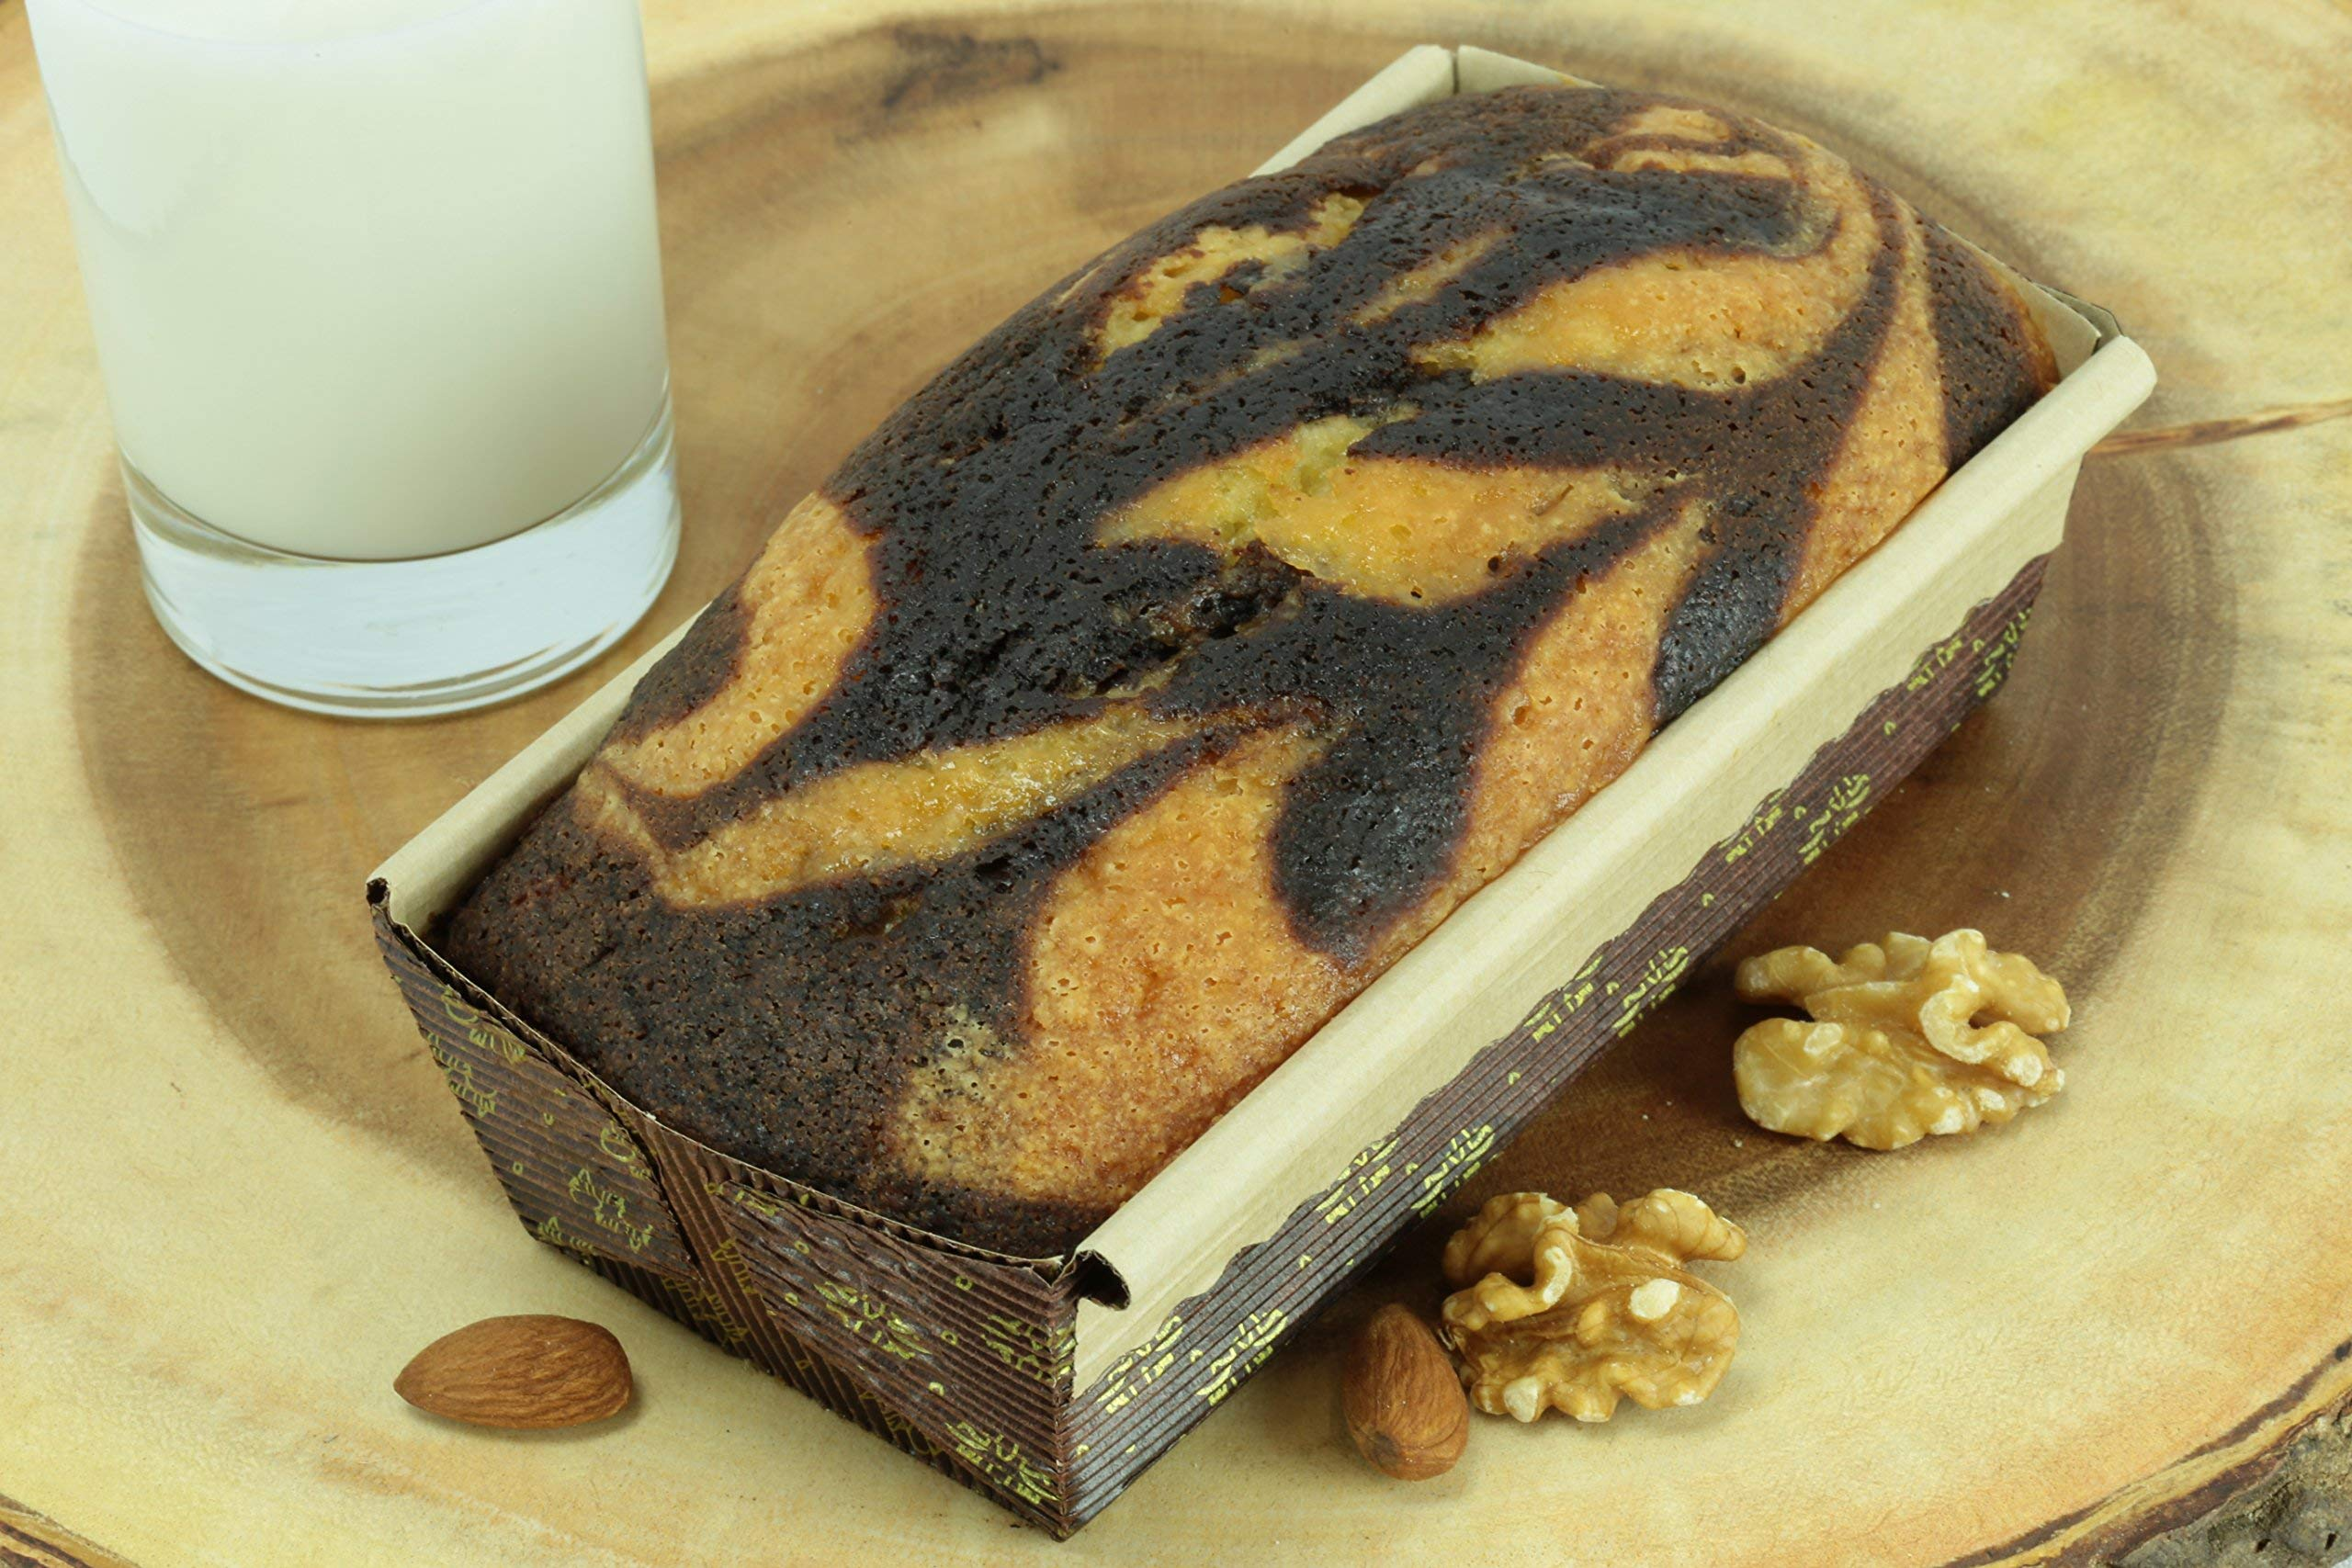 New Premium Paper Baking Loaf Pan, Nonstick, Disposable, All Natural & Eco Friendly, for Chocolate Cake, Banana Bread By Ecobake (100) by Ecobake (Image #5)